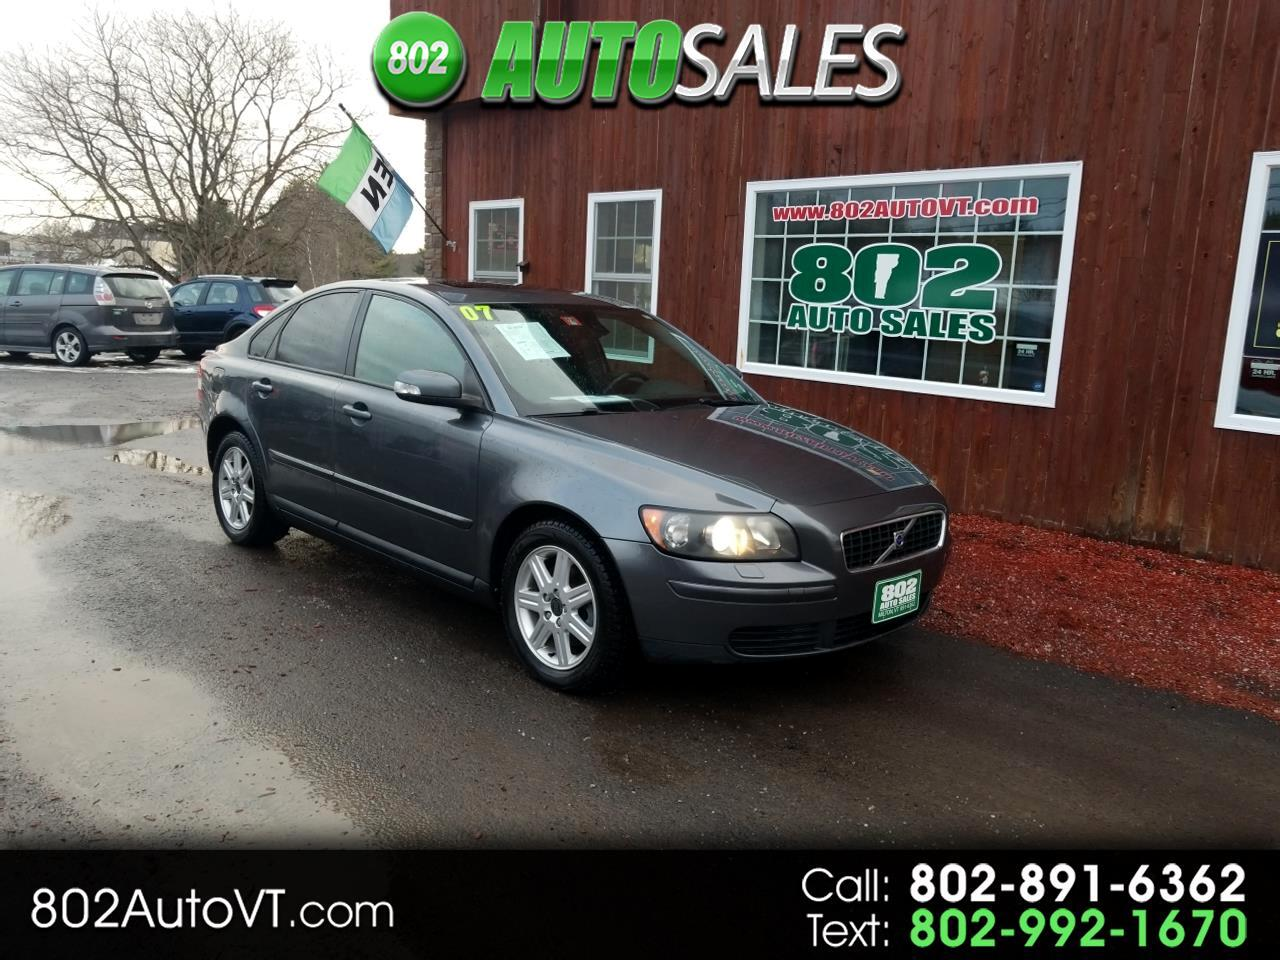 2007 Volvo S40 4dr Sdn 2.4L AT FWD